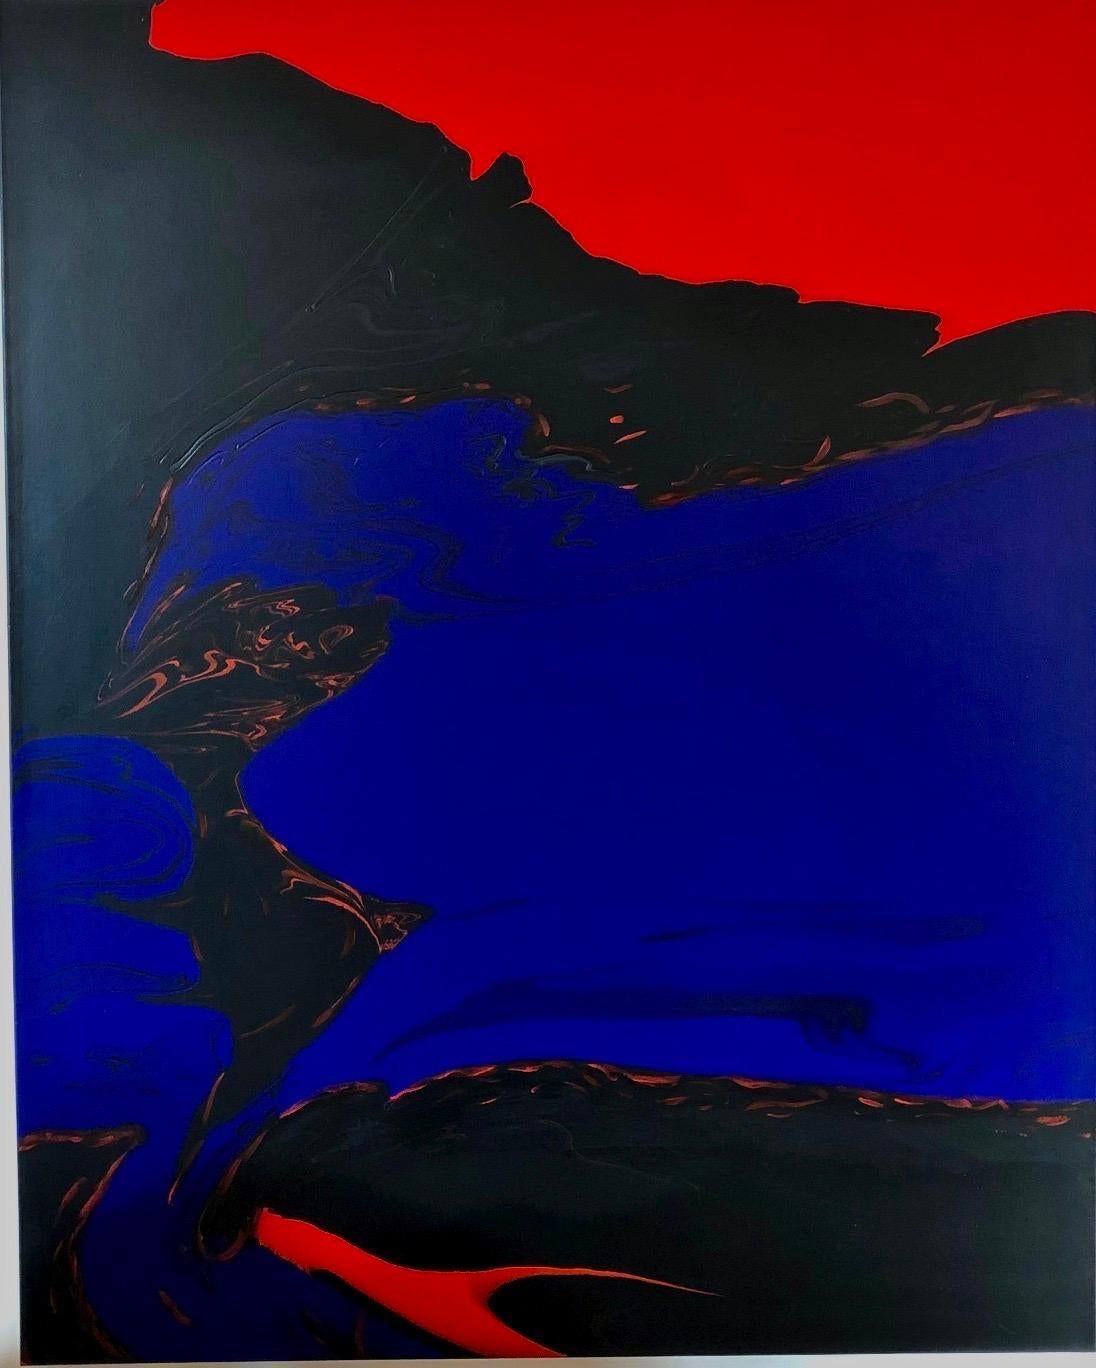 Deep Water by Glenn Green, abstract painting, blue, black, red on canvas